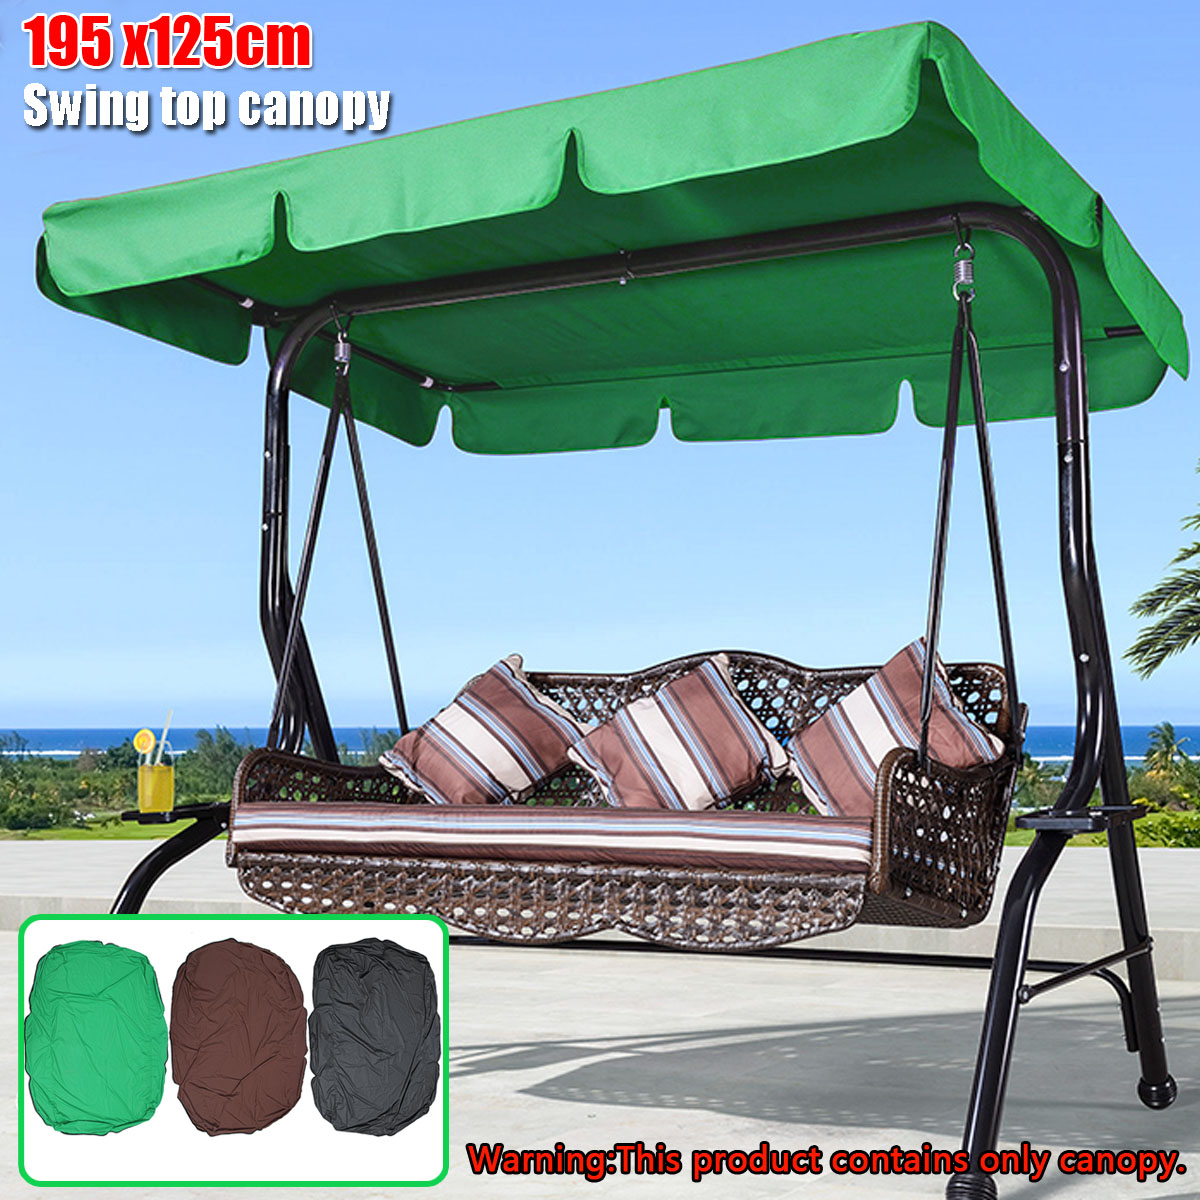 Swing Chair Canopy Replacement Leather Swivel Club Summer Gardening Cover For Ourdoor Courtyard Garden Hammock Awning In Shade Sails Nets From Home